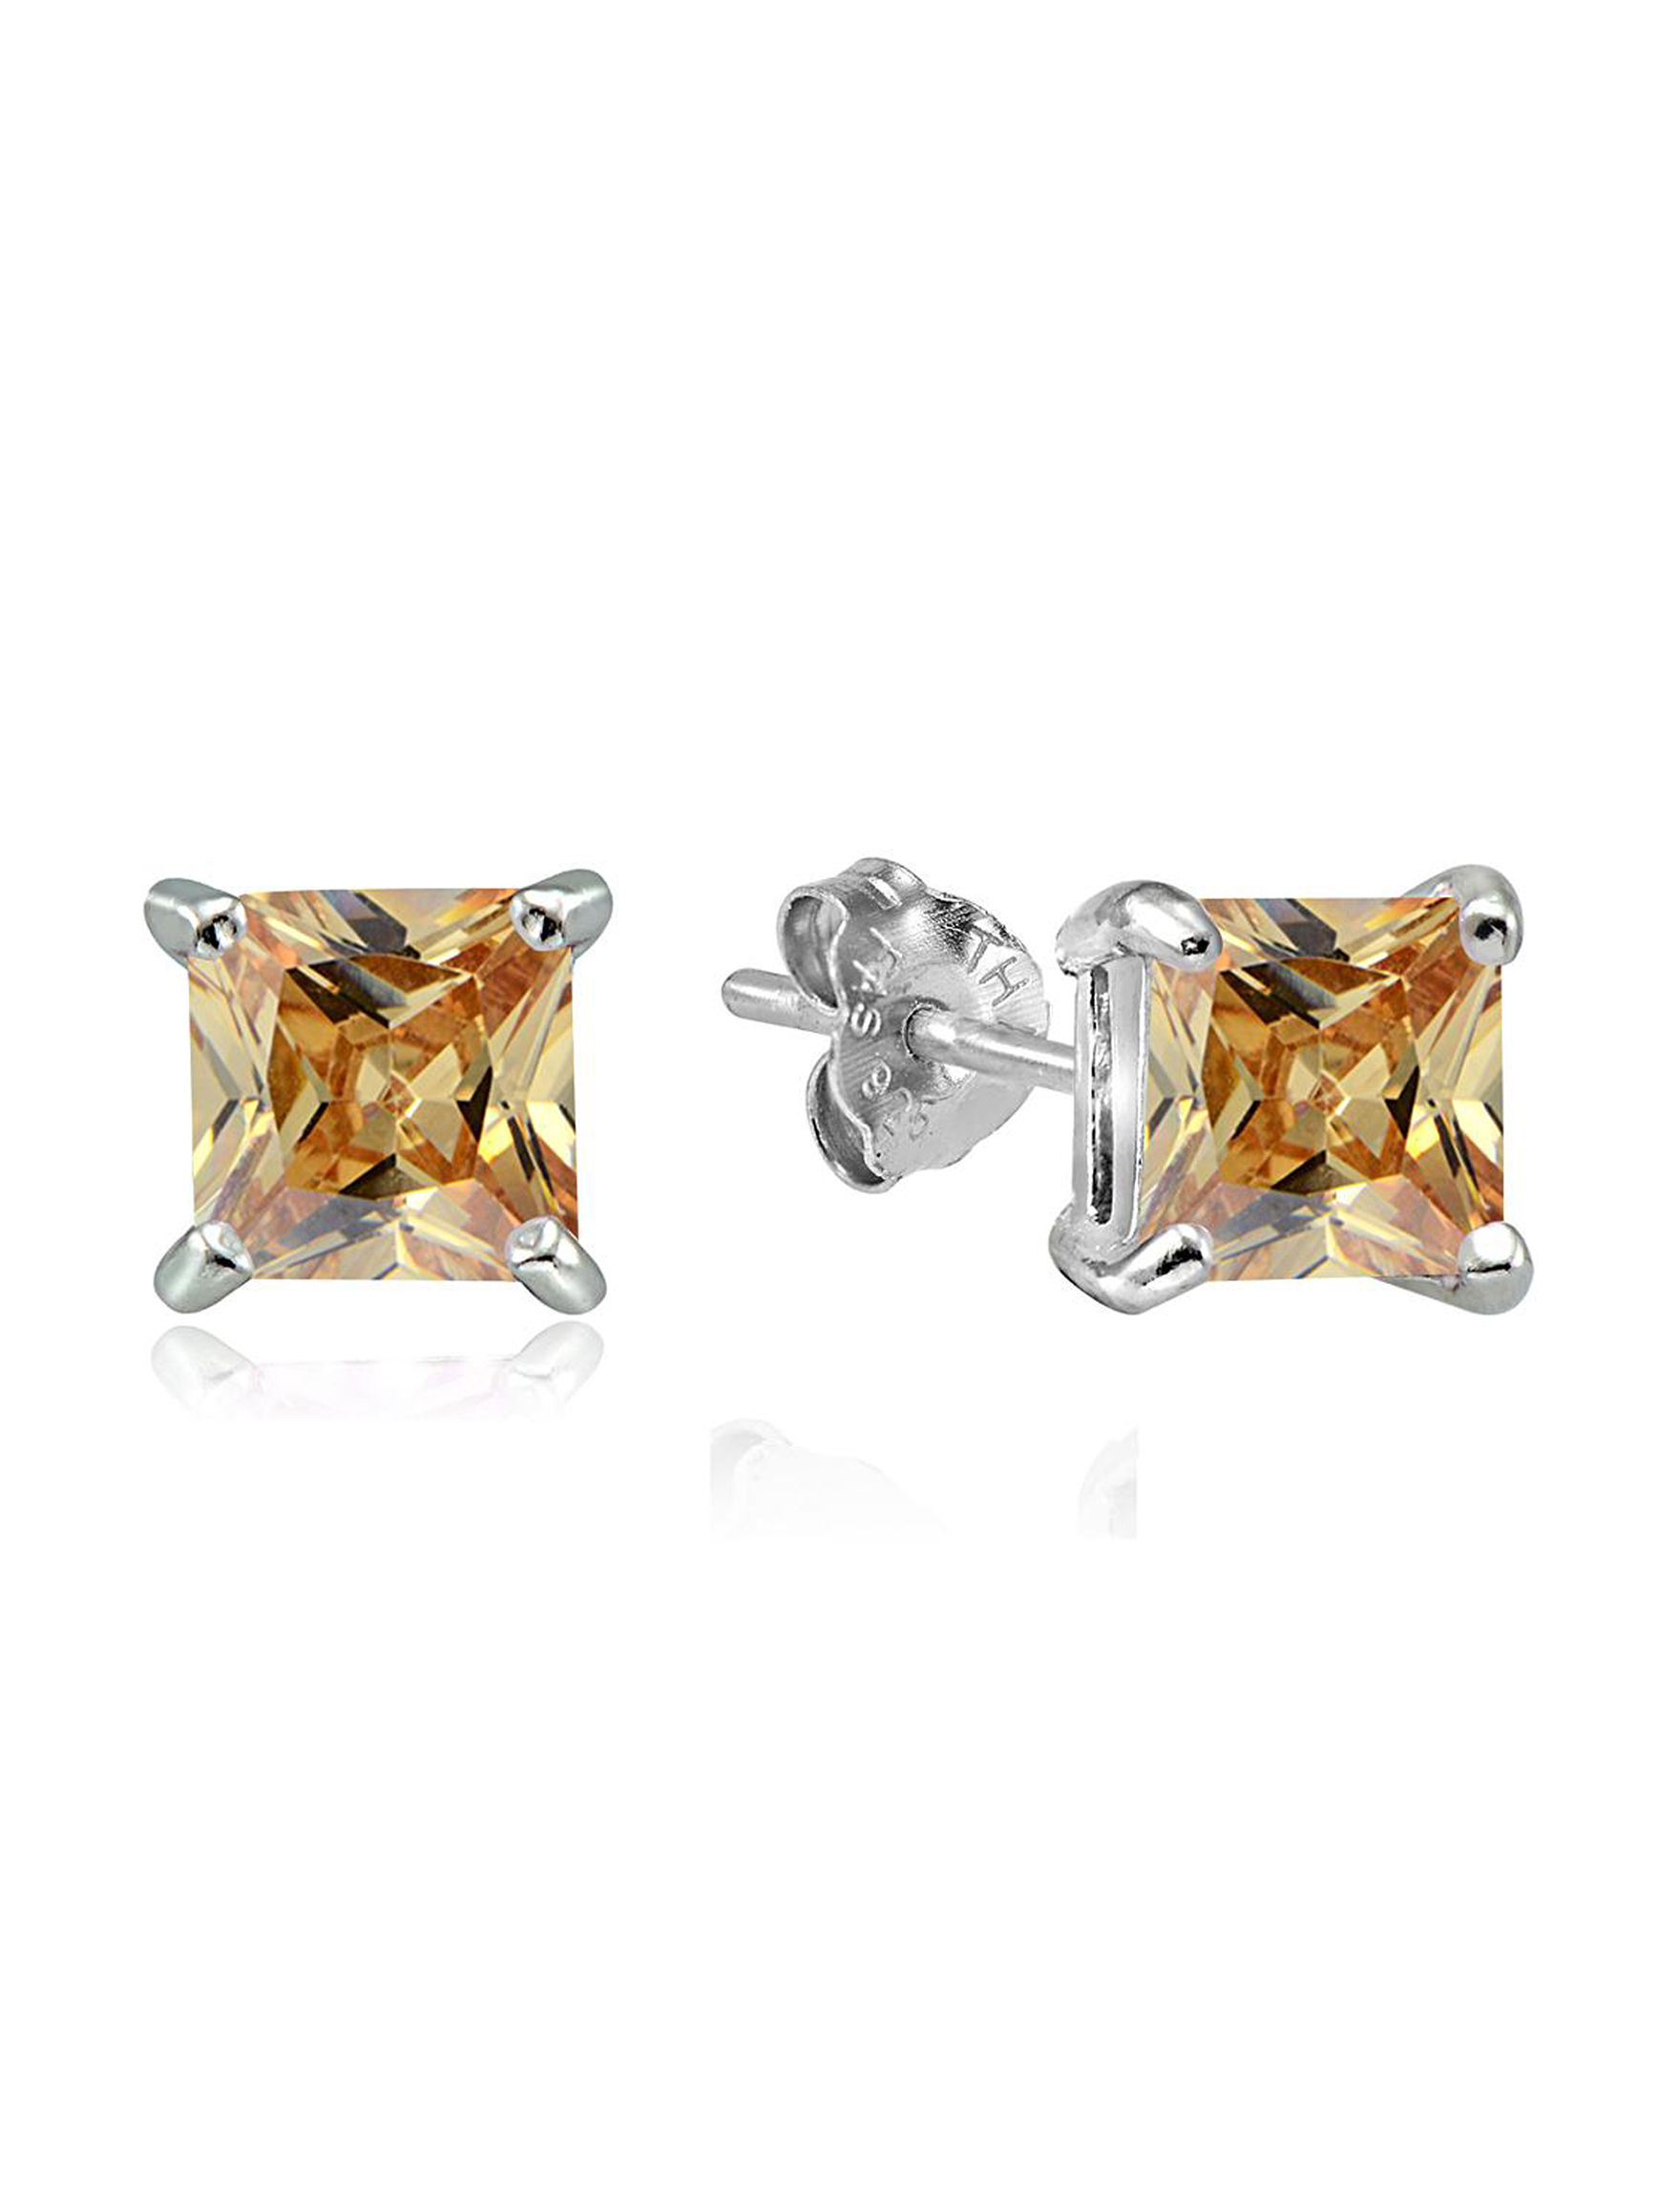 FMC Champagne Stone Studs Earrings Fine Jewelry